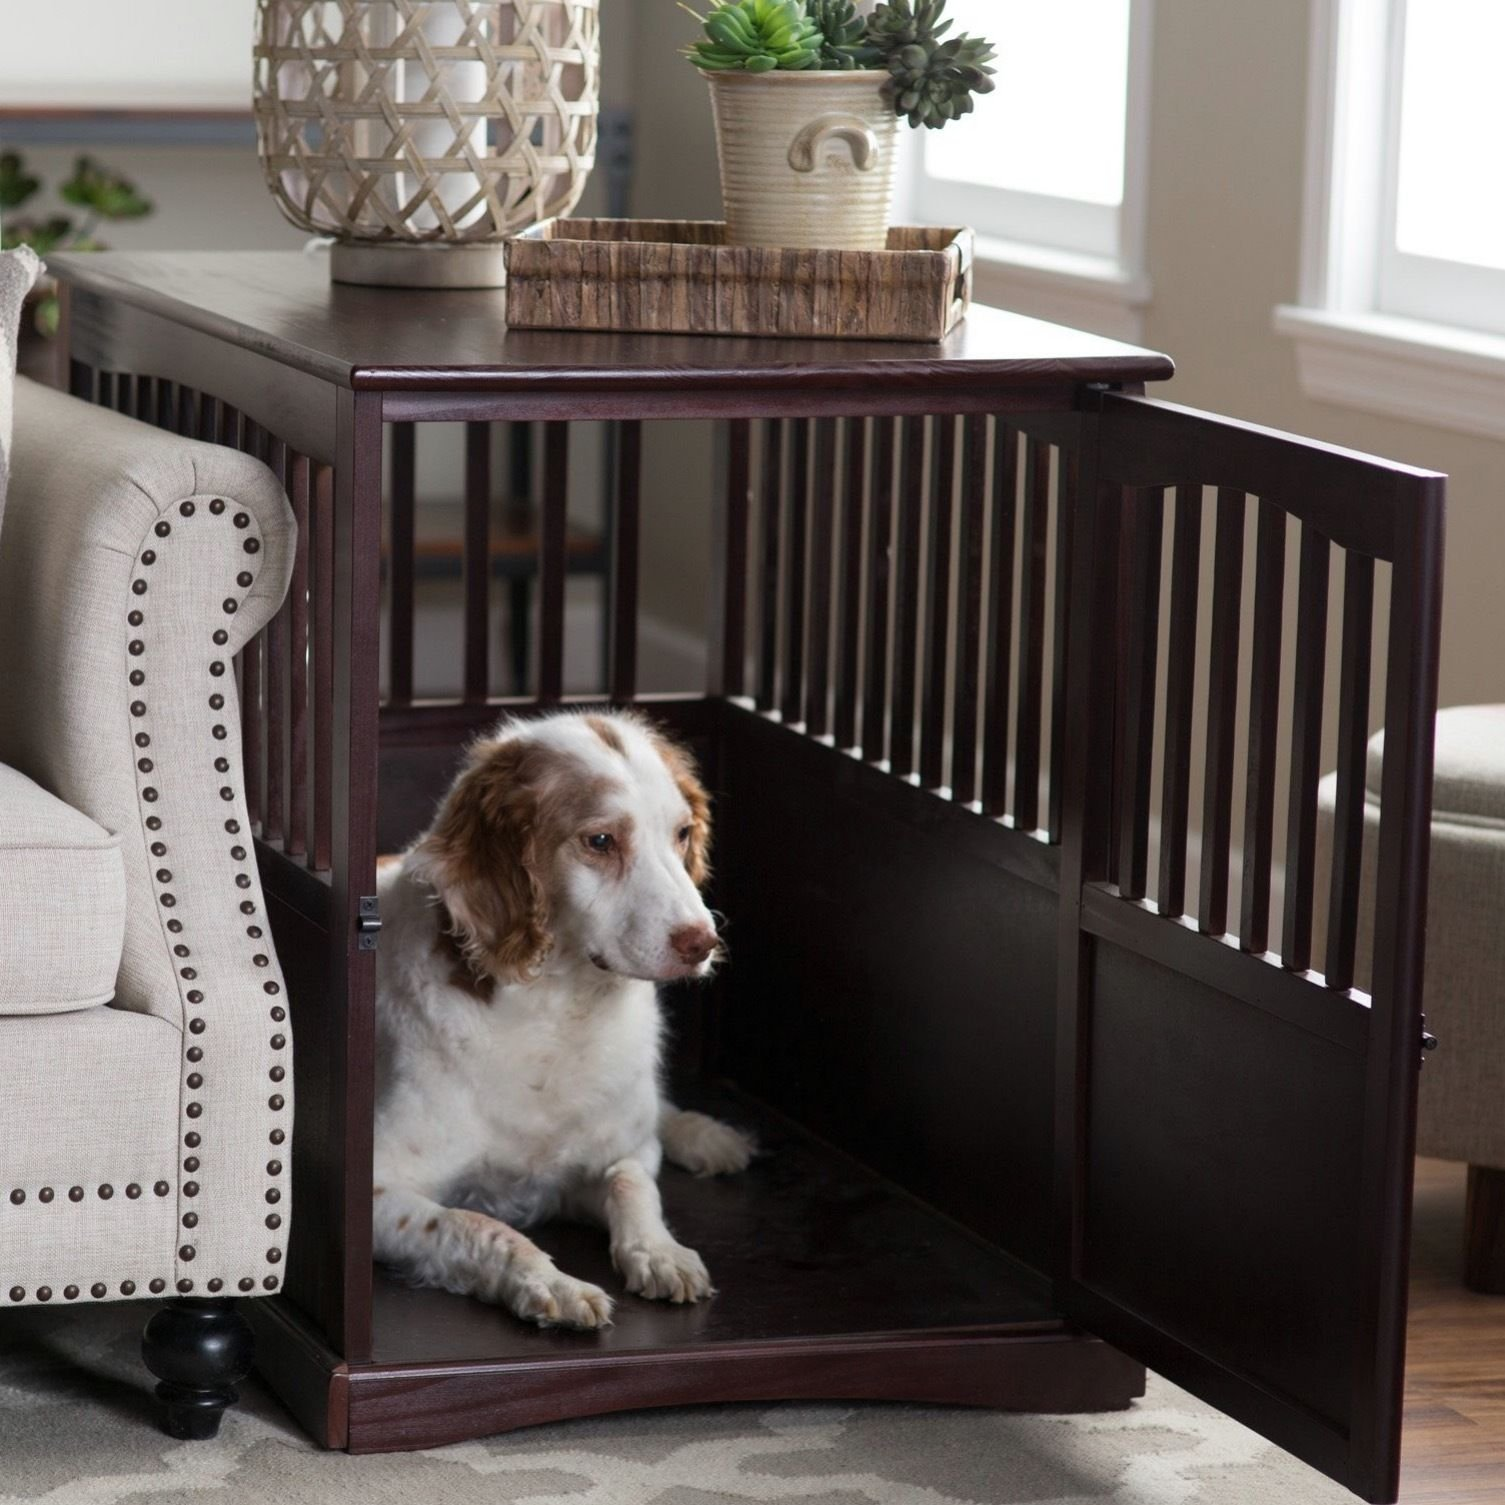 Dog Crate Kennel Cage Bed Night Stand End Table Wood Furniture Cave House Room Large size / Dark Brown. by Newport